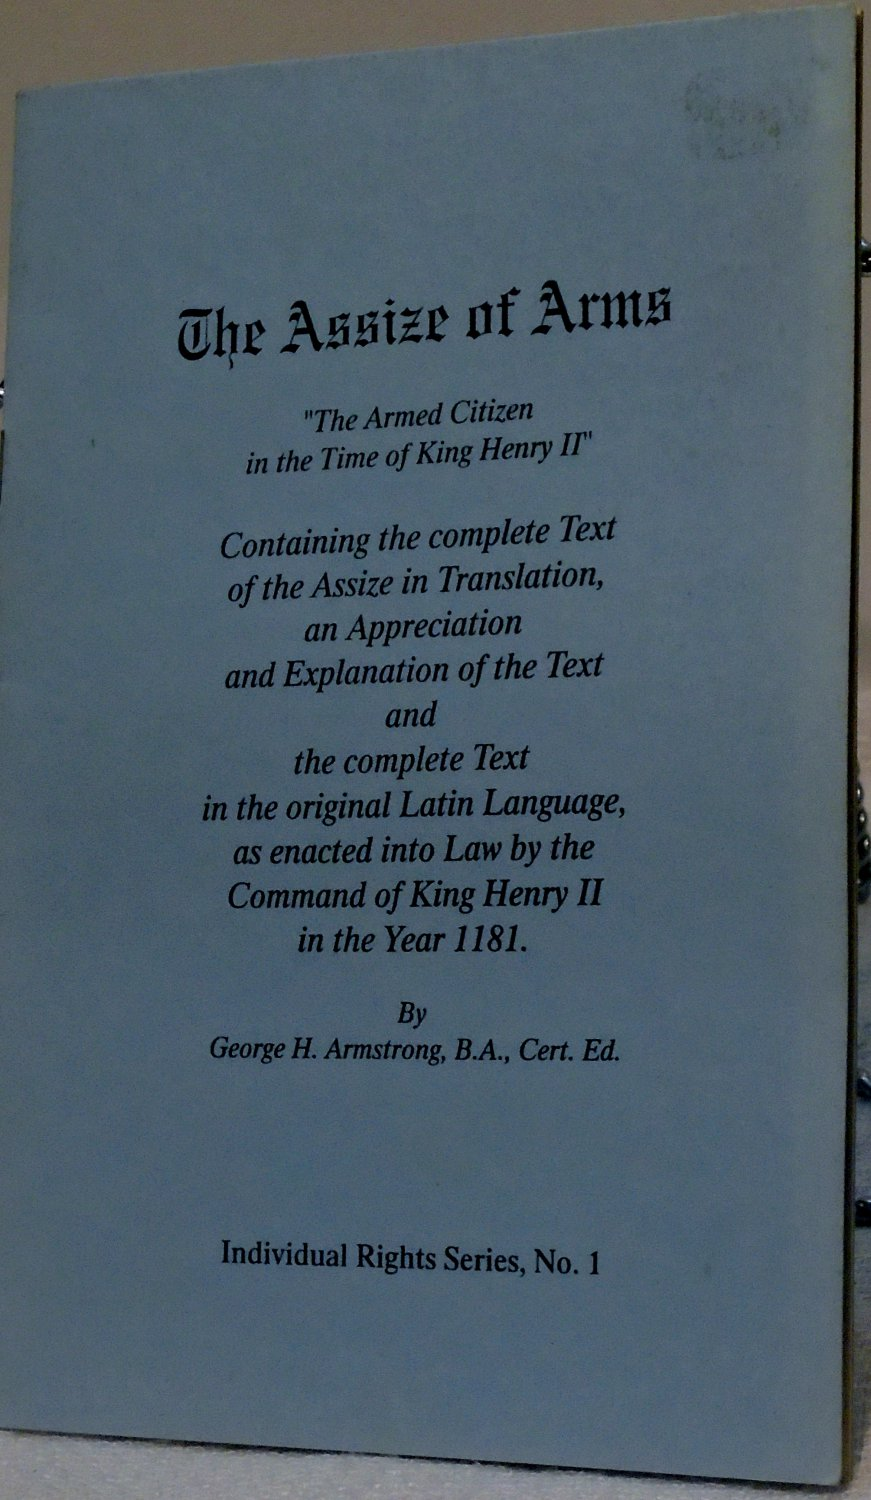 The Assize of Arms AaA Publishing 2001